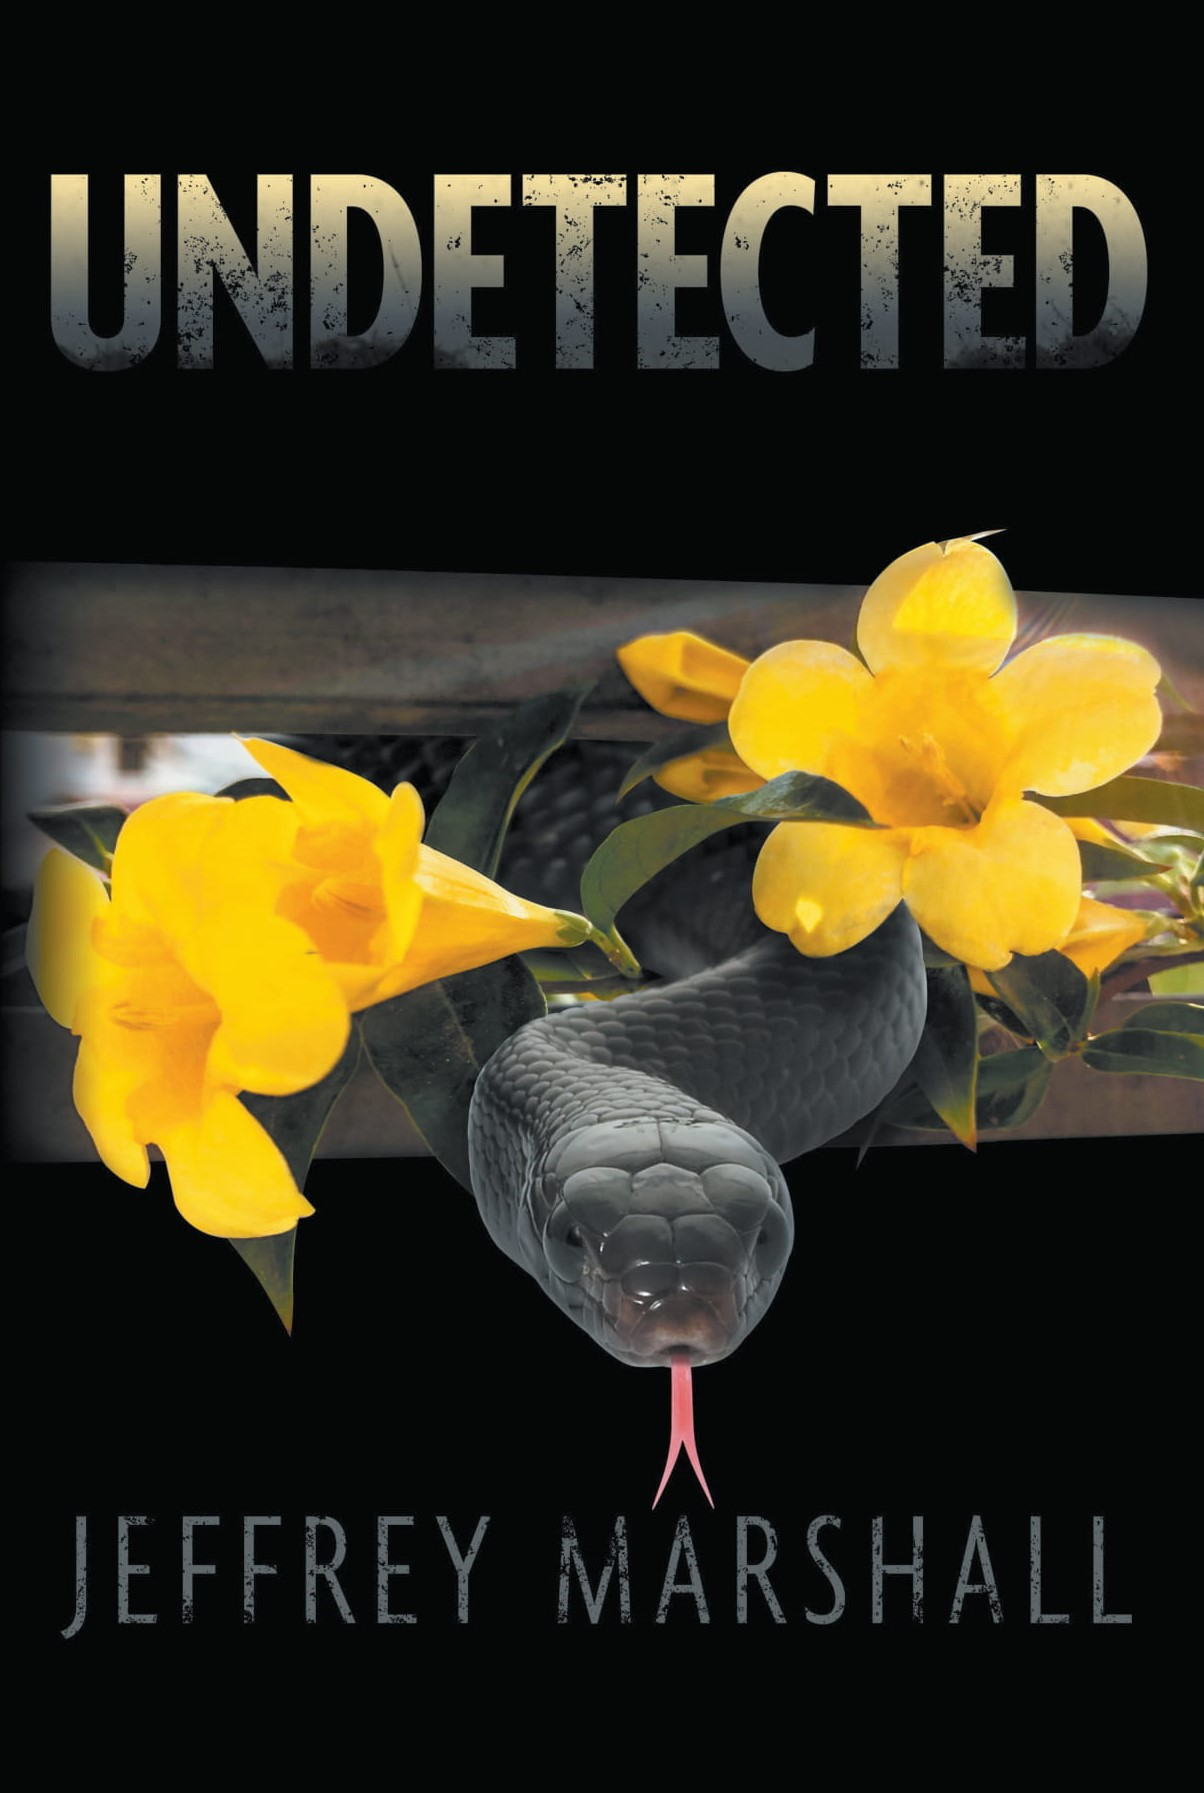 Undetected/